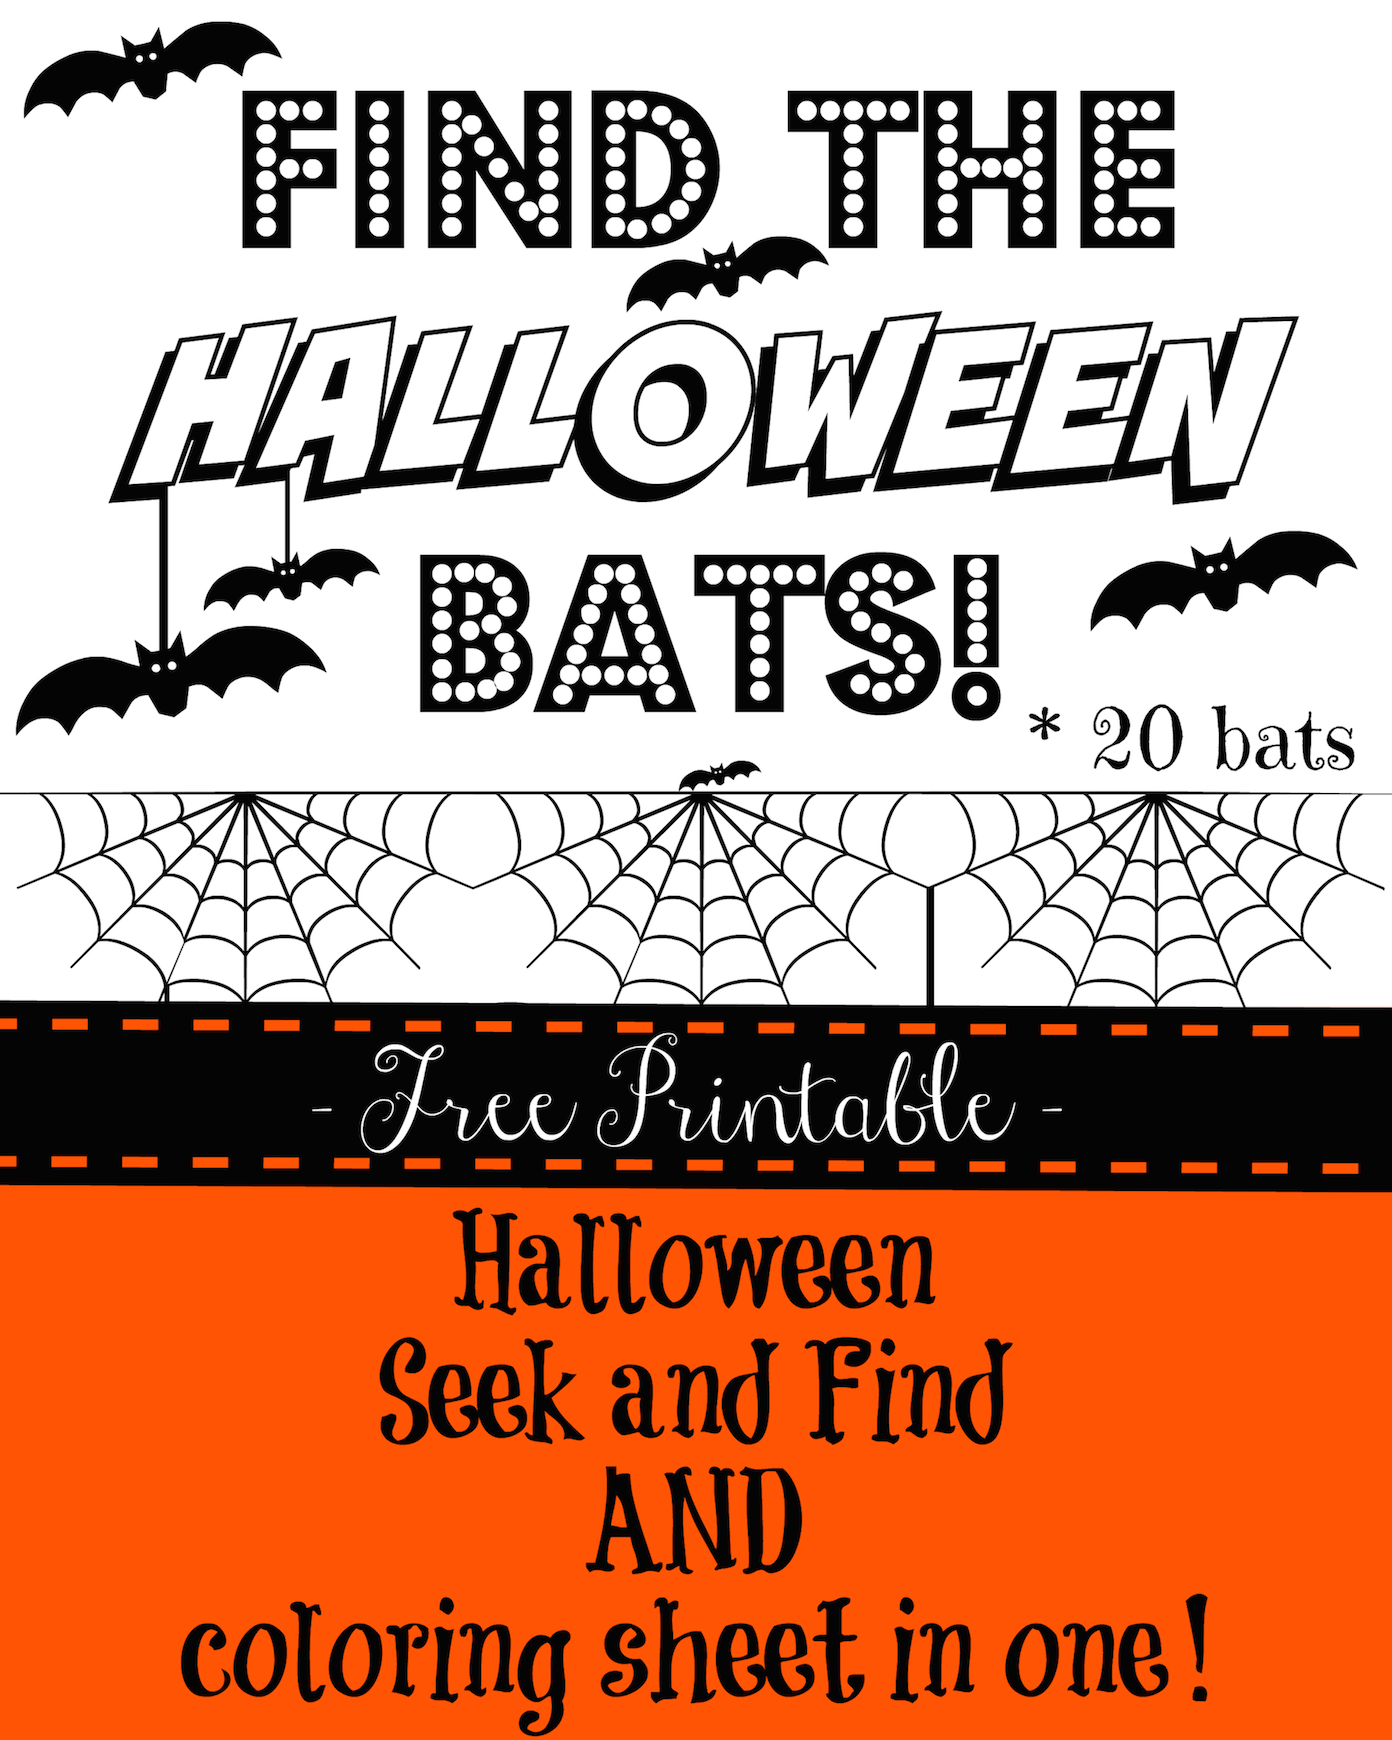 Halloween Seek And Find Printable For Kids Halloween Party